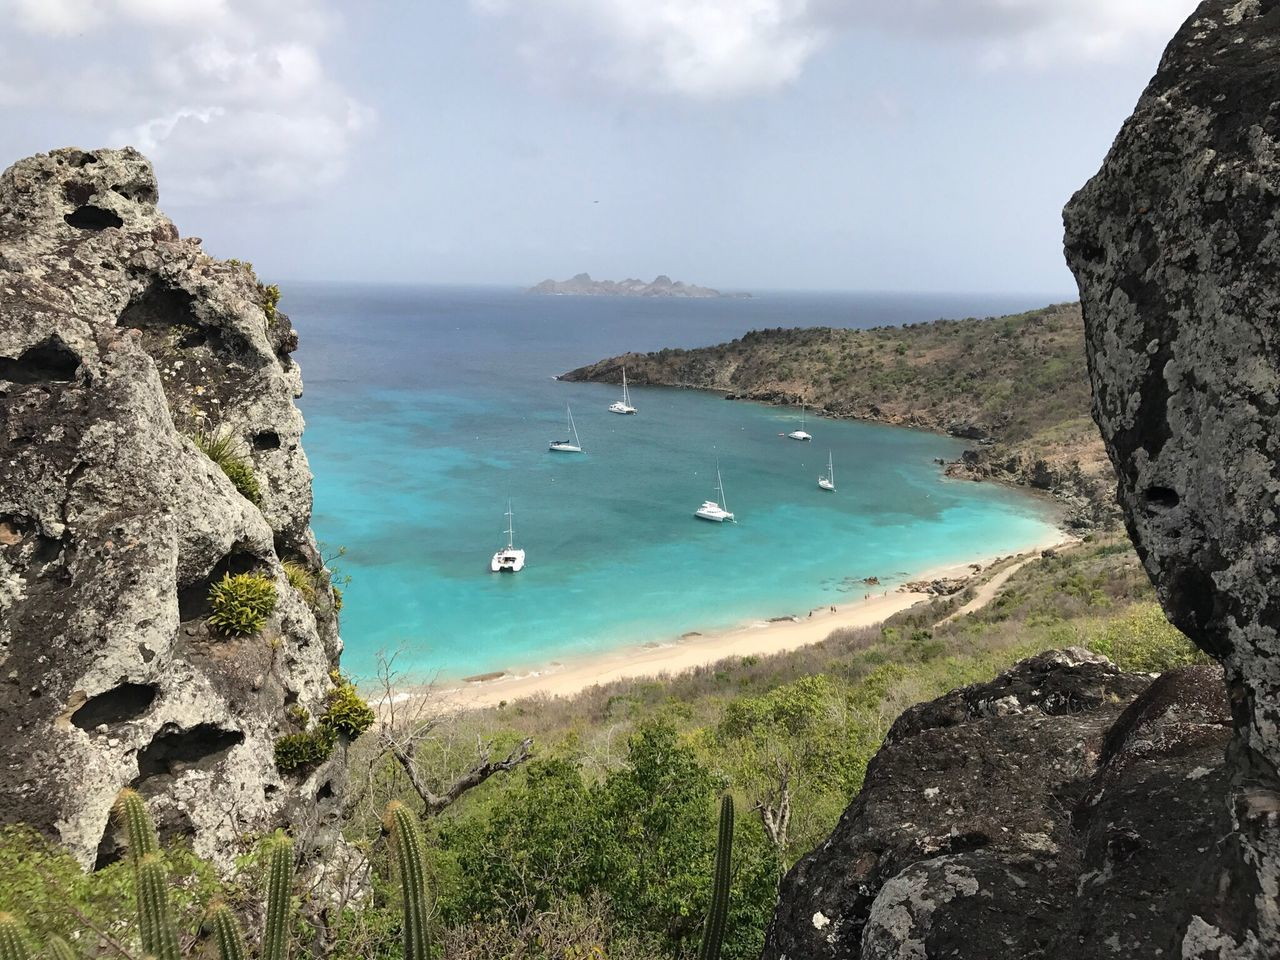 Sea Water Nature Beauty In Nature Rock Formation High Angle View Day Tranquility No People Beach Stbarth Caribbean Sea Colombier Saintbarthalemy